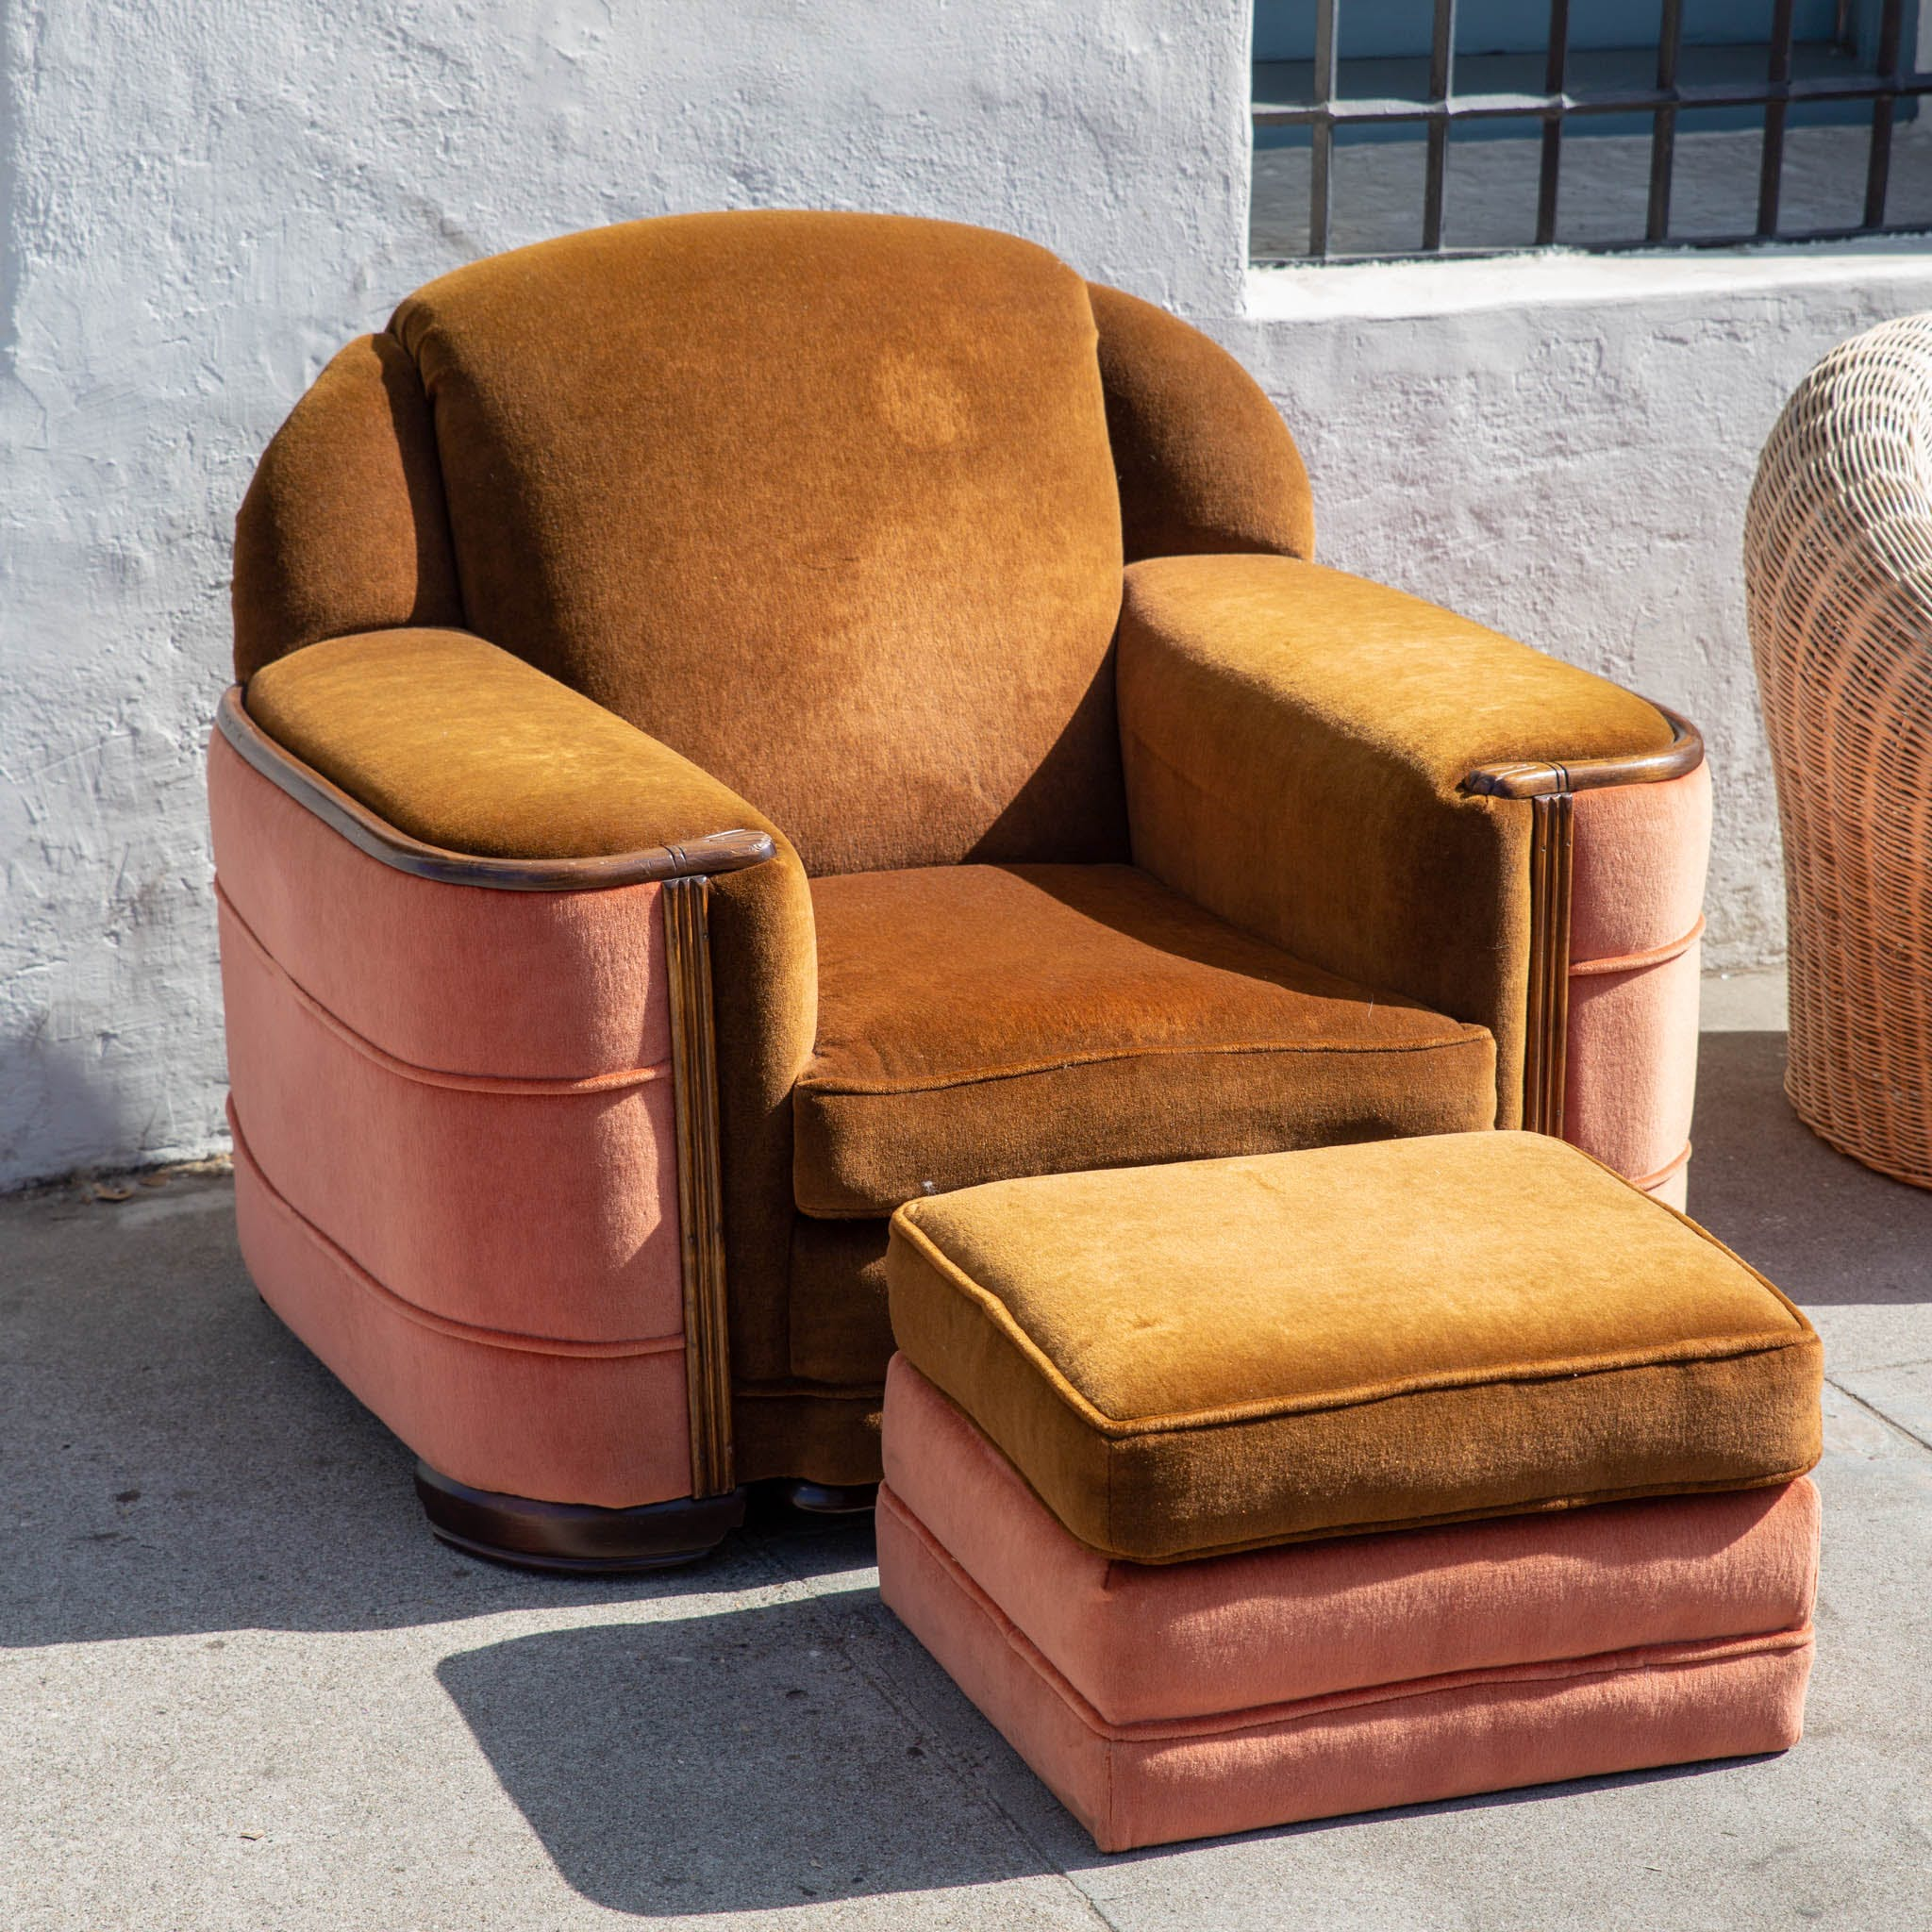 1920s Art Deco Club Chair and Ottoman with Original Upholstery